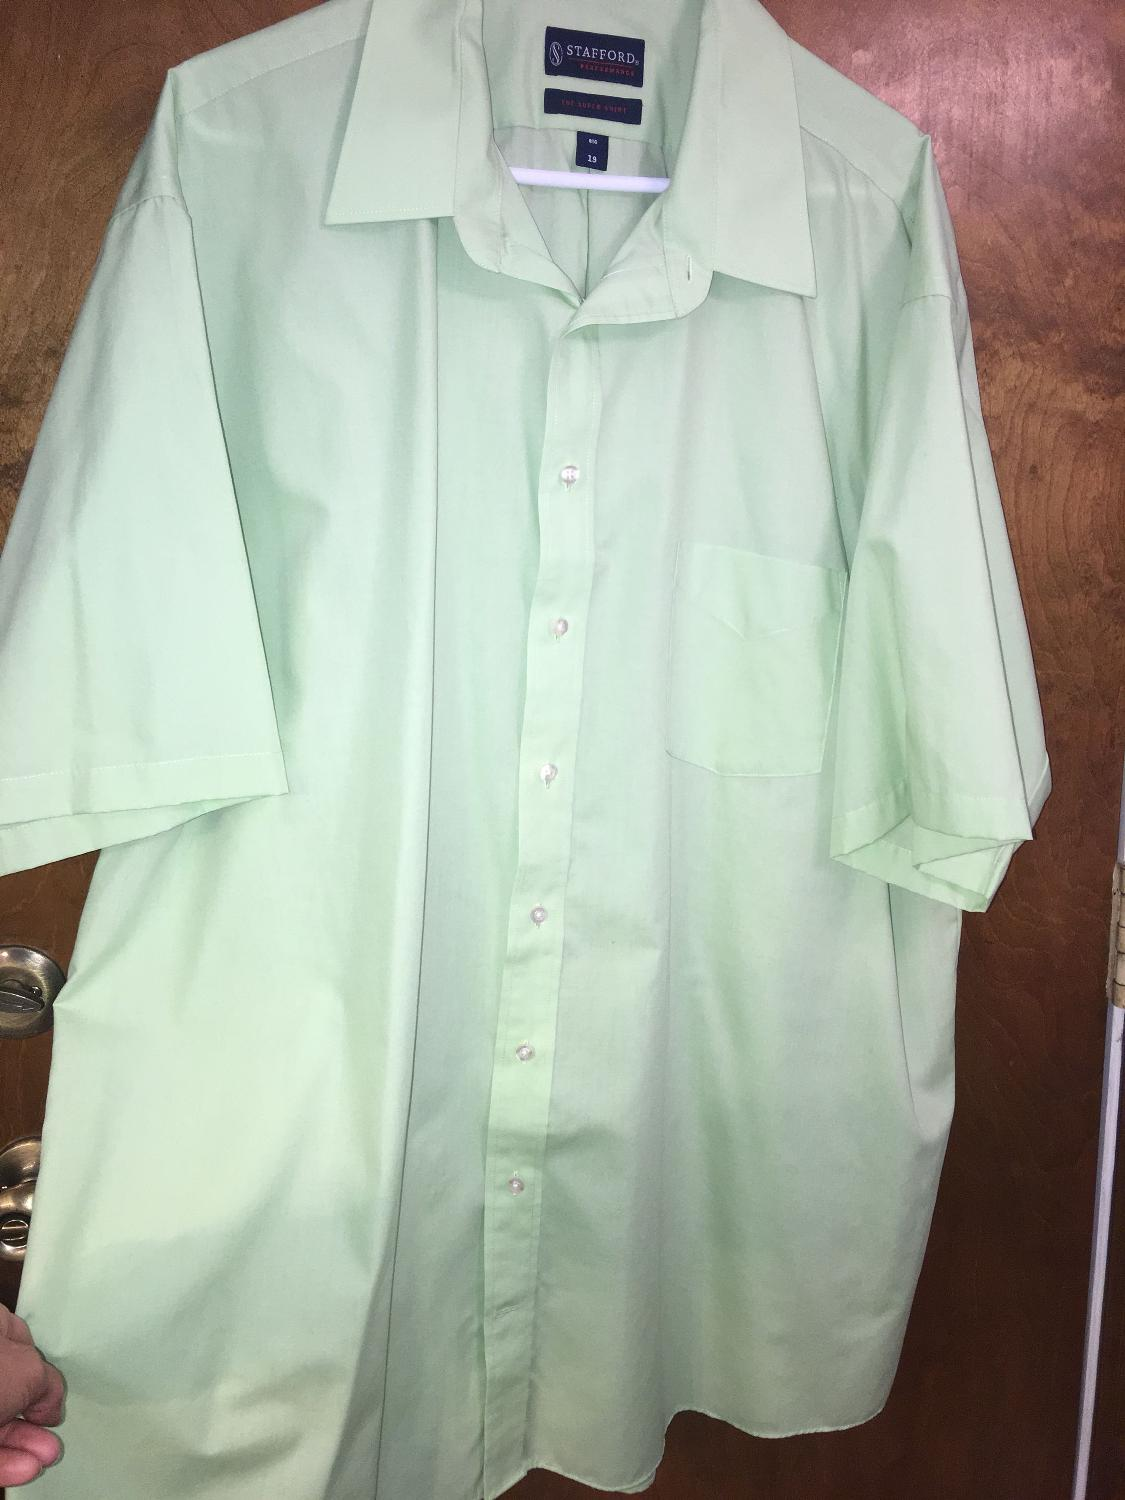 Find More Stafford Short Sleeve Dress Shirt Mens 3xl For Sale At Up